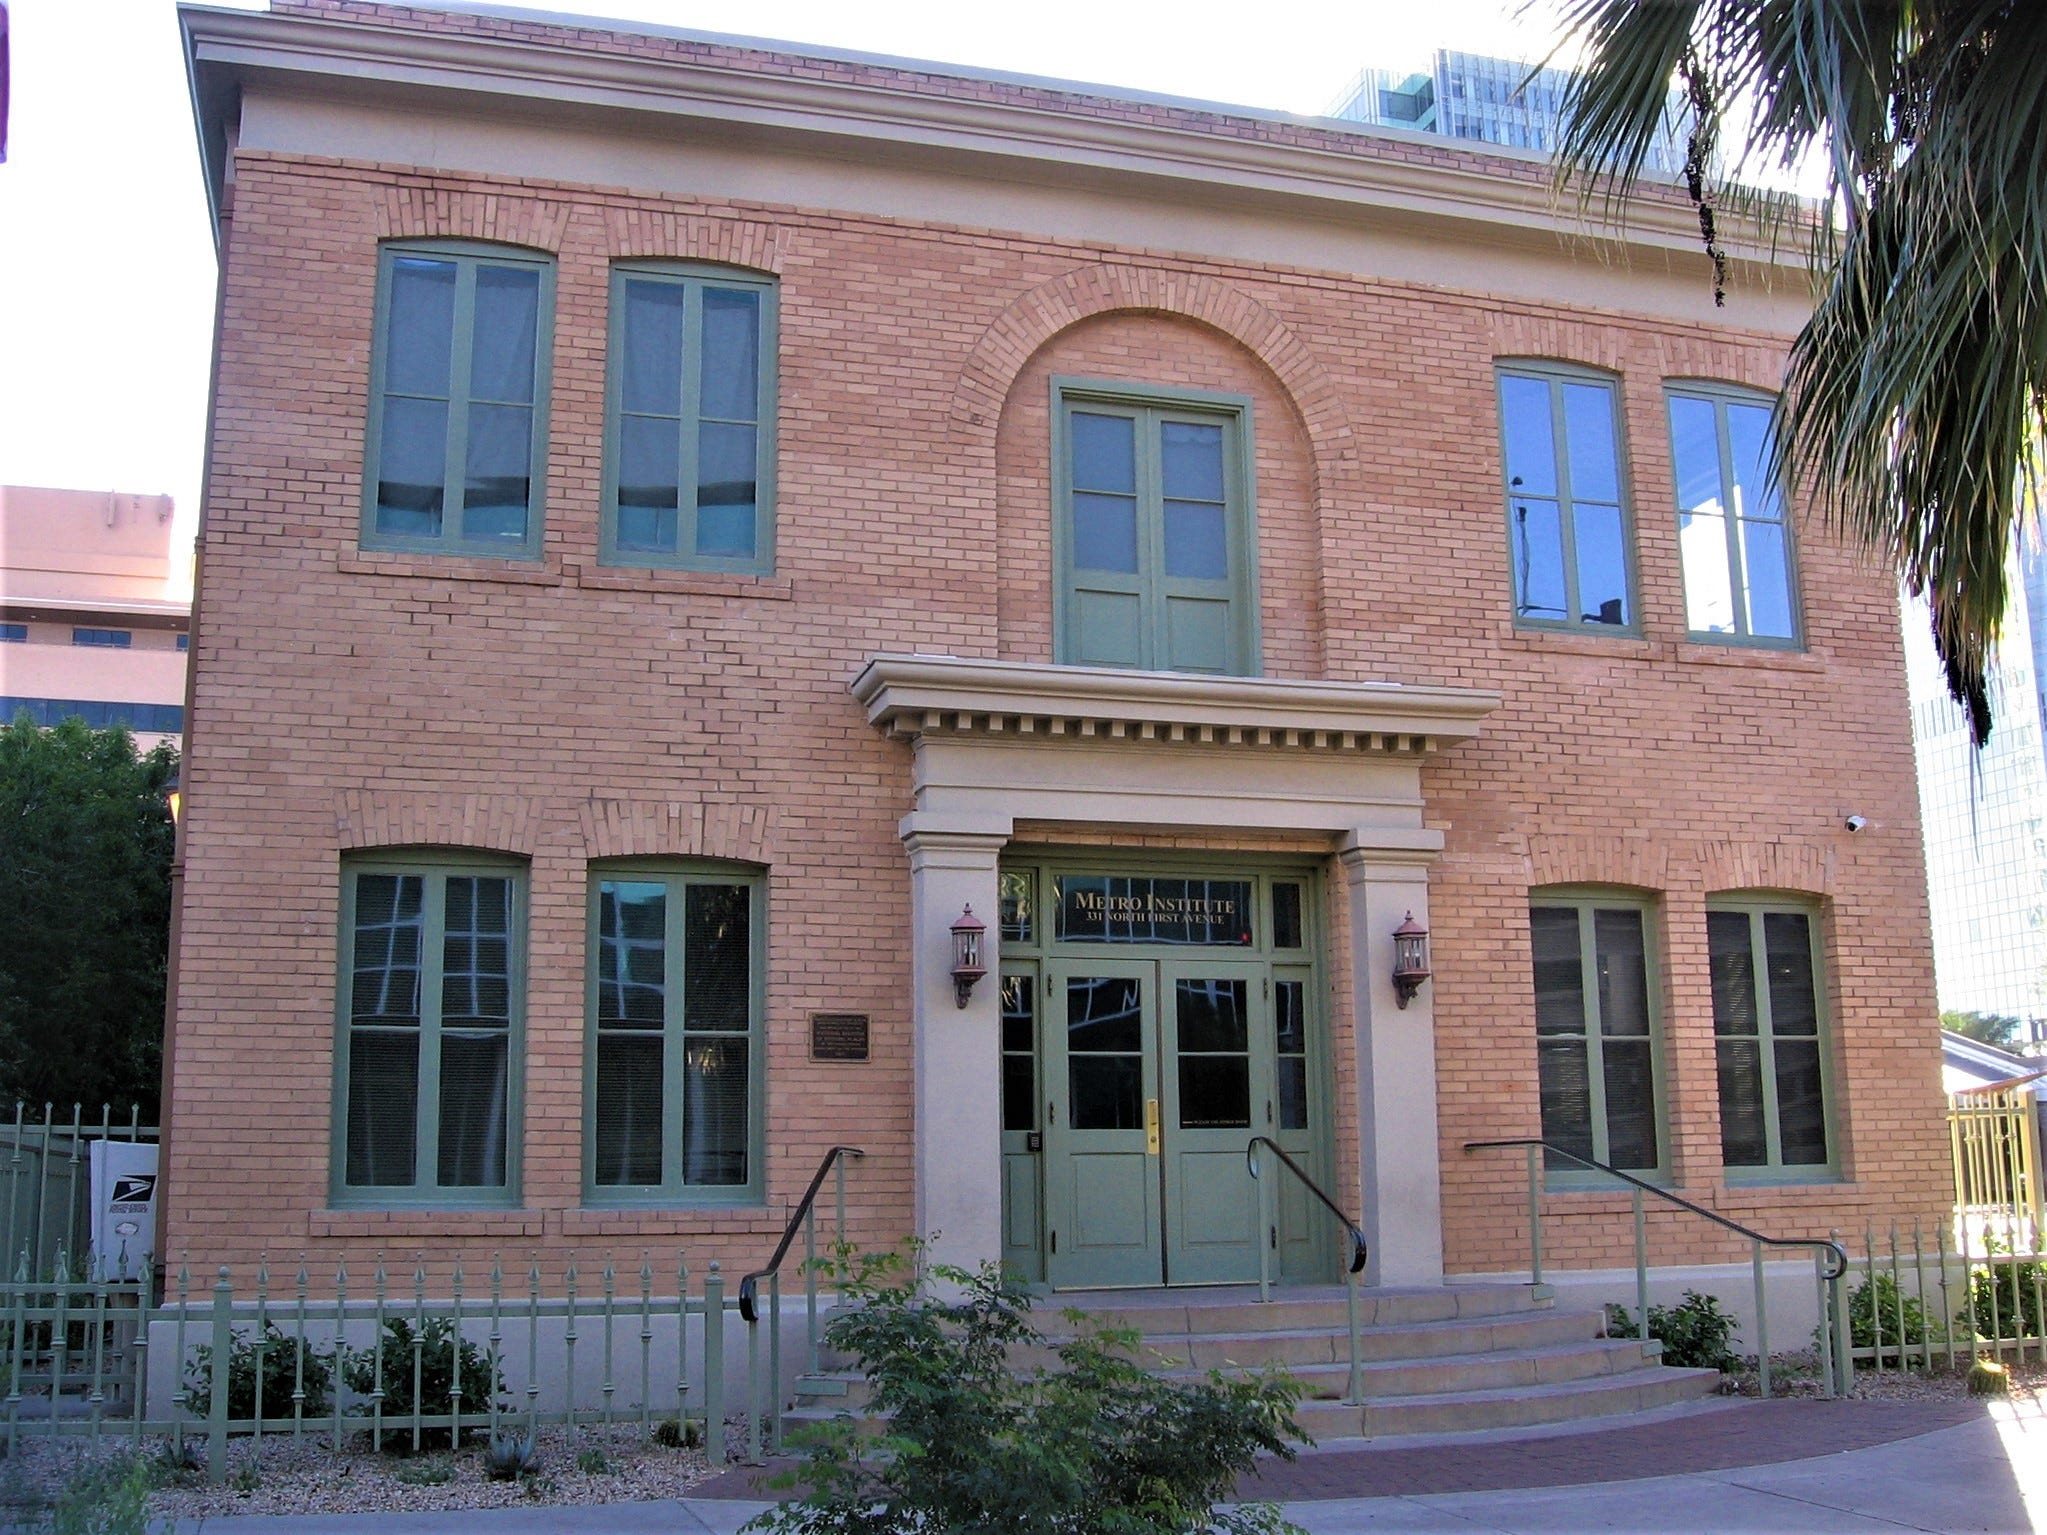 The former administrative office (1917) for Phoenix School District No. 1 still stands as an office building, but not for a school district.